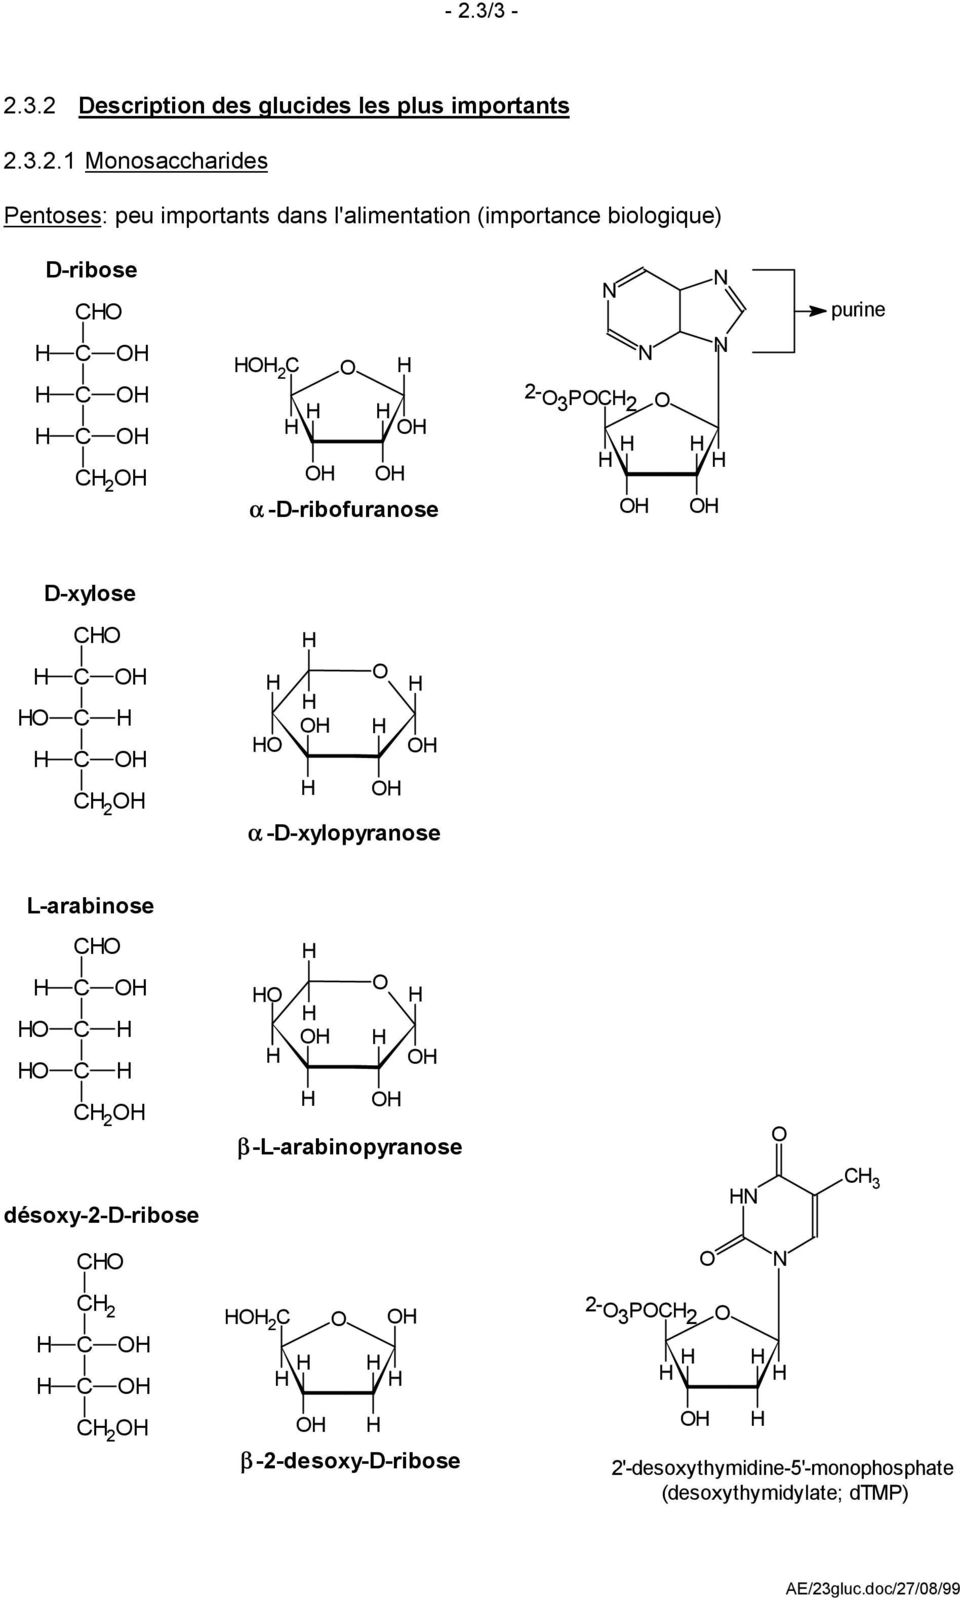 P 2 purine D-xylose 2 α -D-xylopyranose L-arabinose 2 β-l-arabinopyranose désoxy-2-d-ribose 3